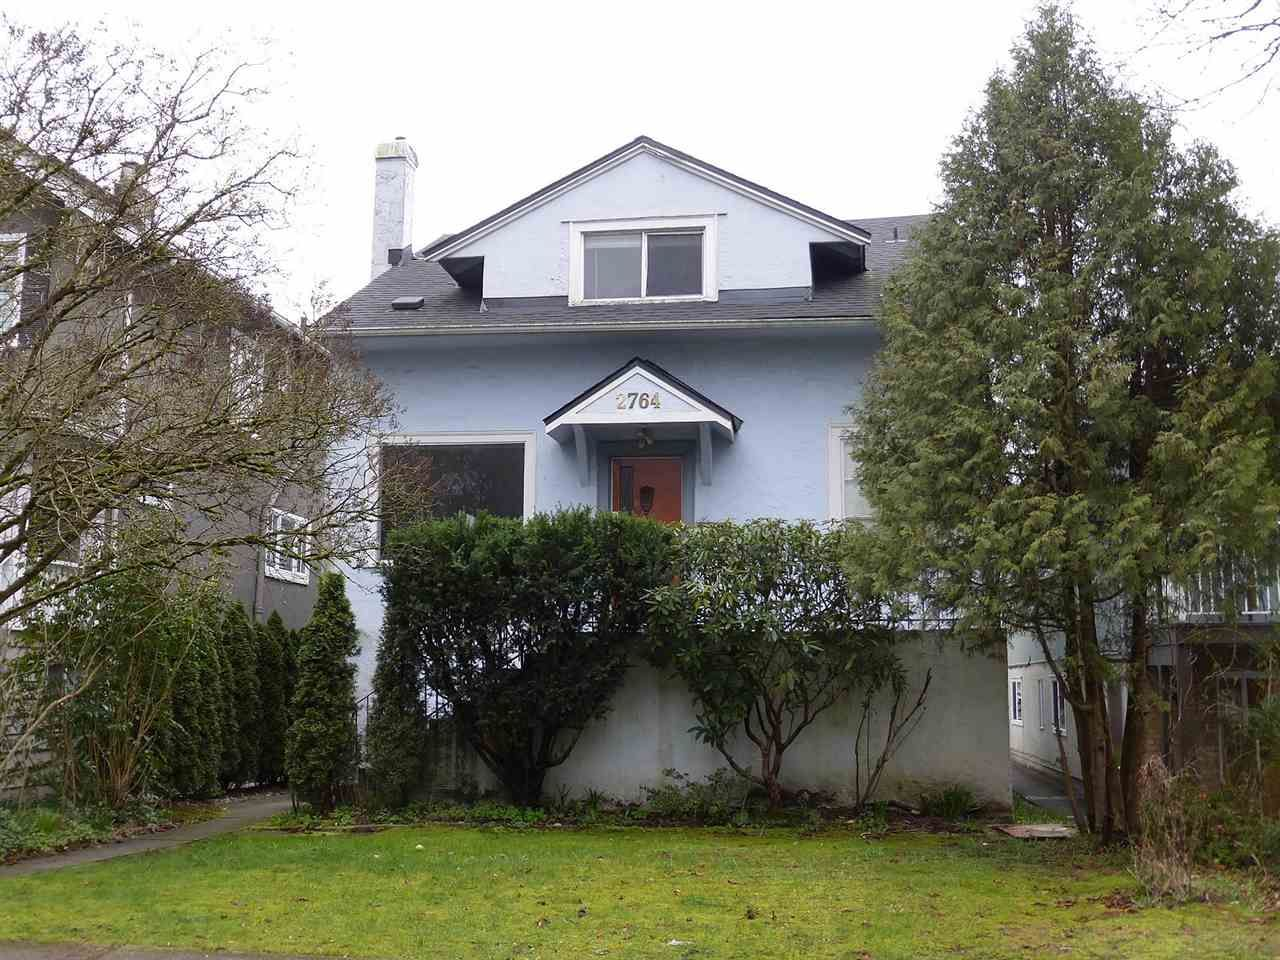 Main Photo: 2764 W 12TH Avenue in Vancouver: Kitsilano House for sale (Vancouver West)  : MLS®# R2042125